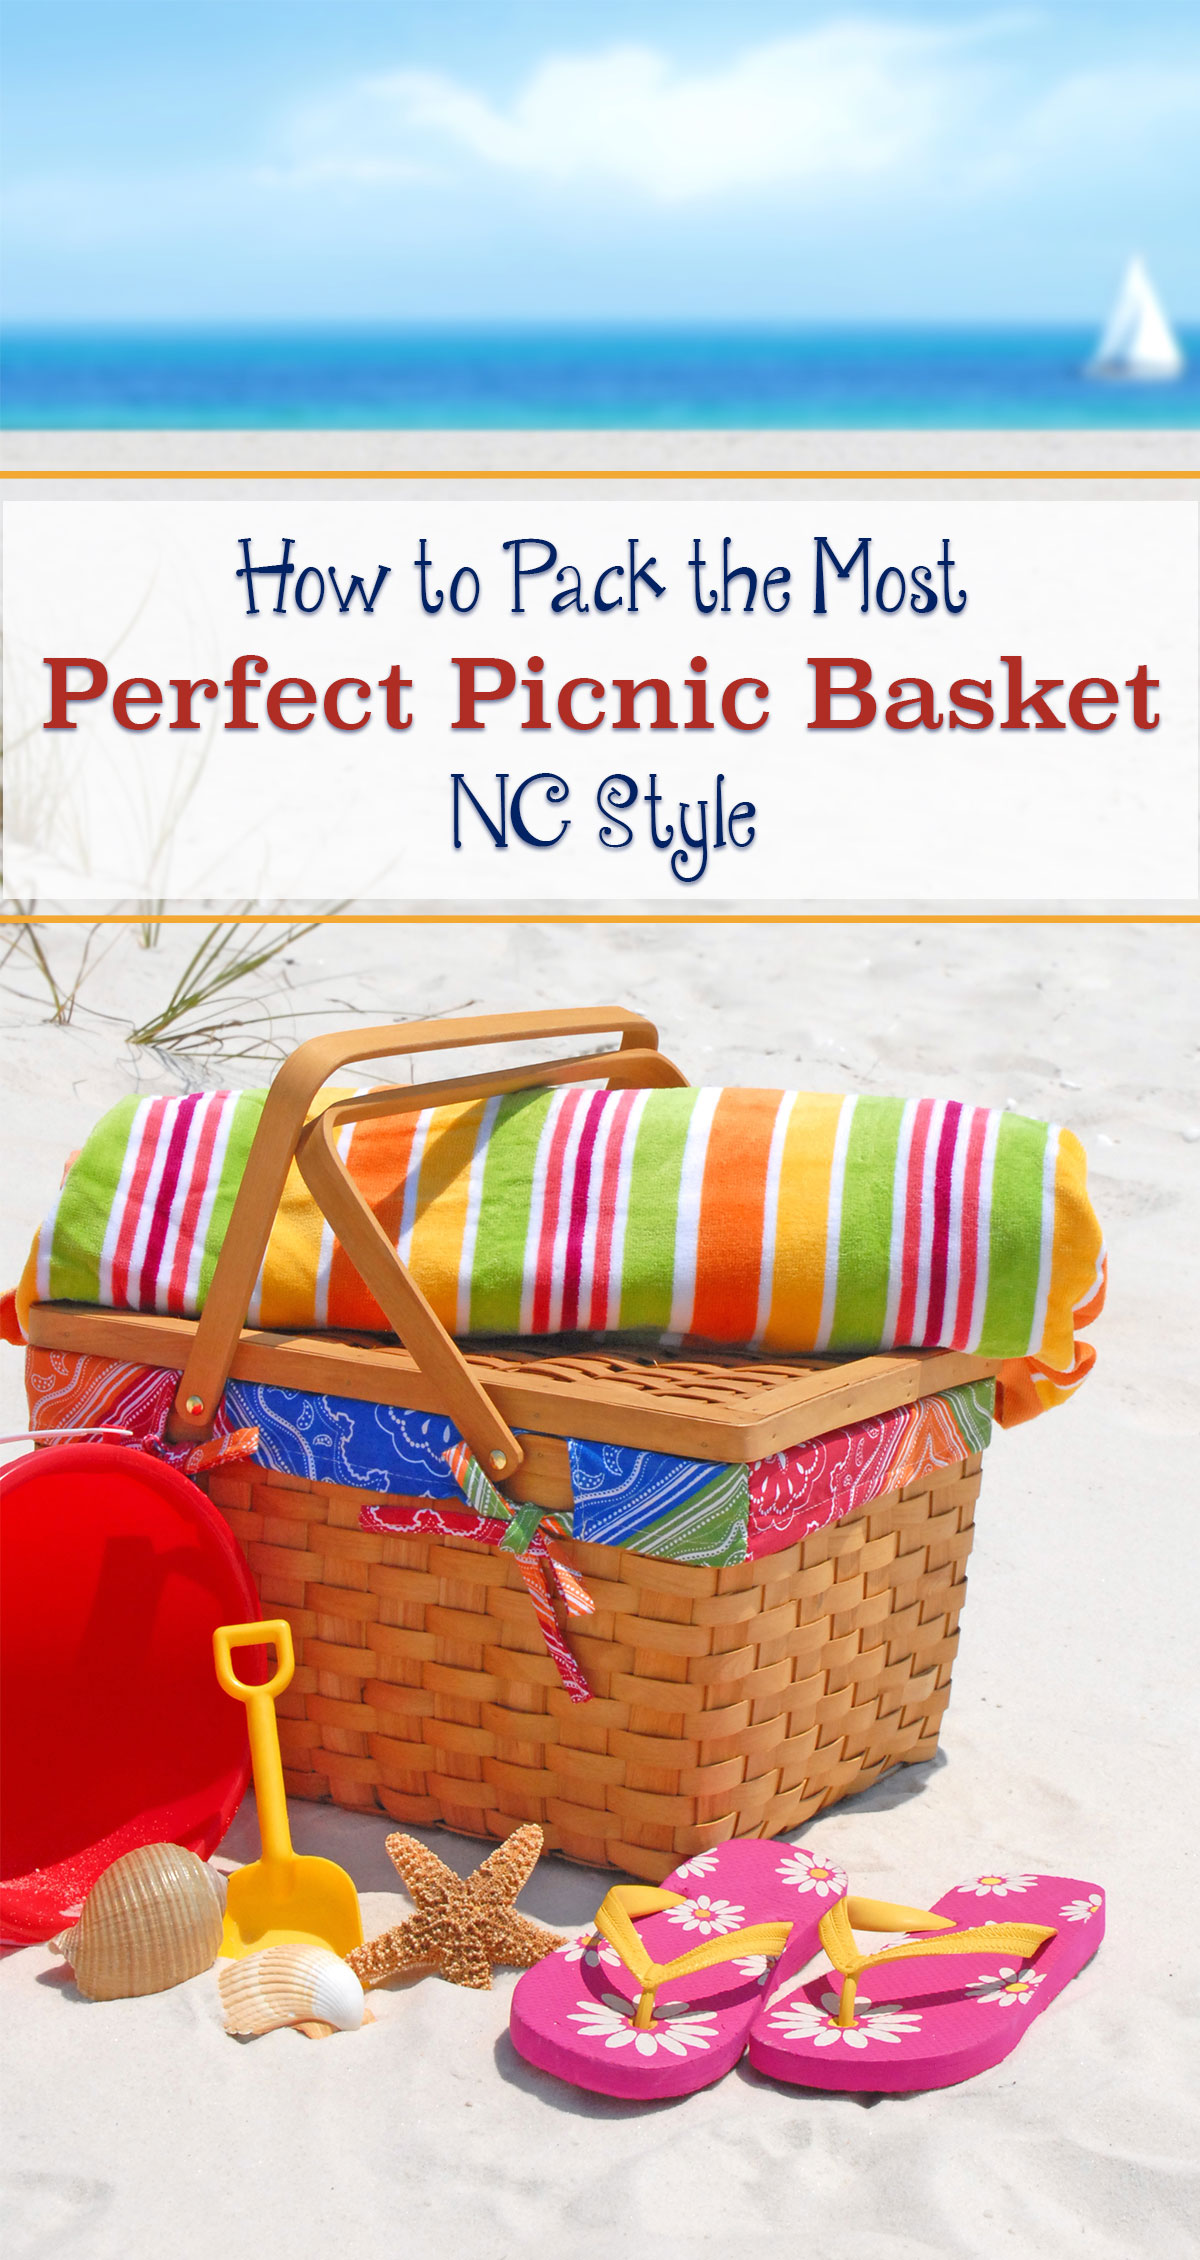 How to Pack the Most Perfect Picnic Basket, NC Style Pin